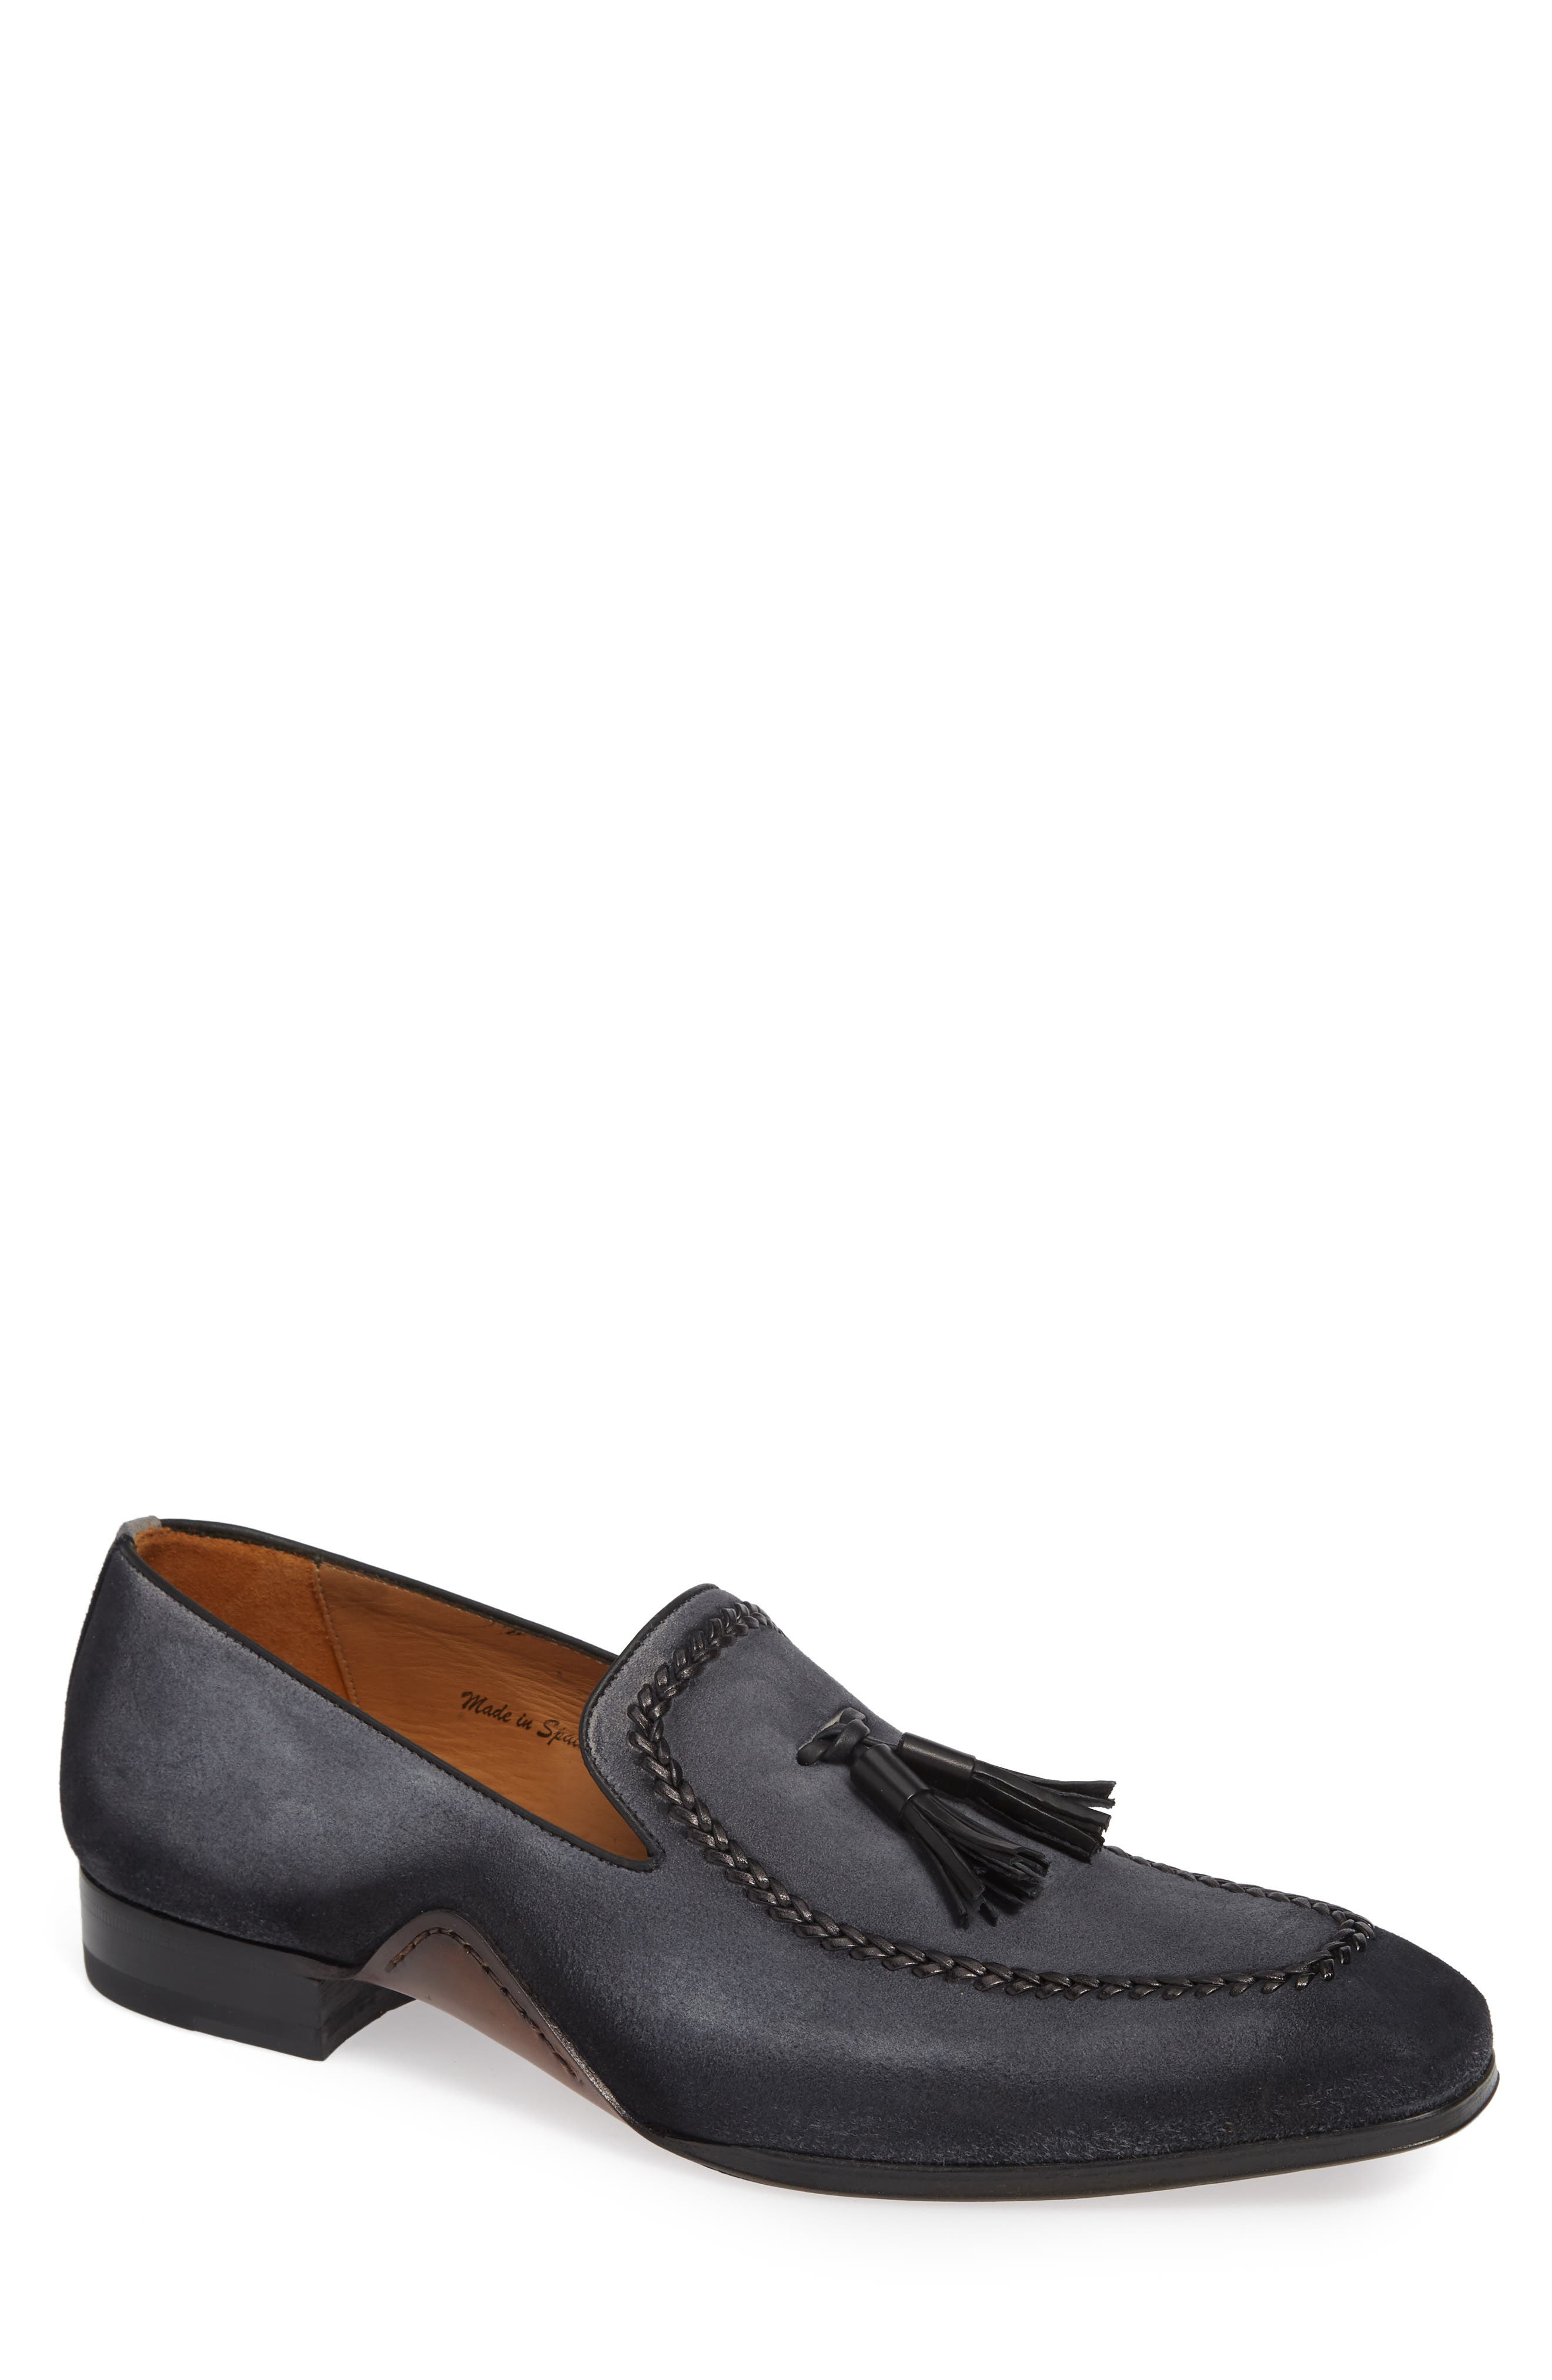 Plazza Tasseled Venetian Loafer,                             Main thumbnail 1, color,                             GREY SUEDE